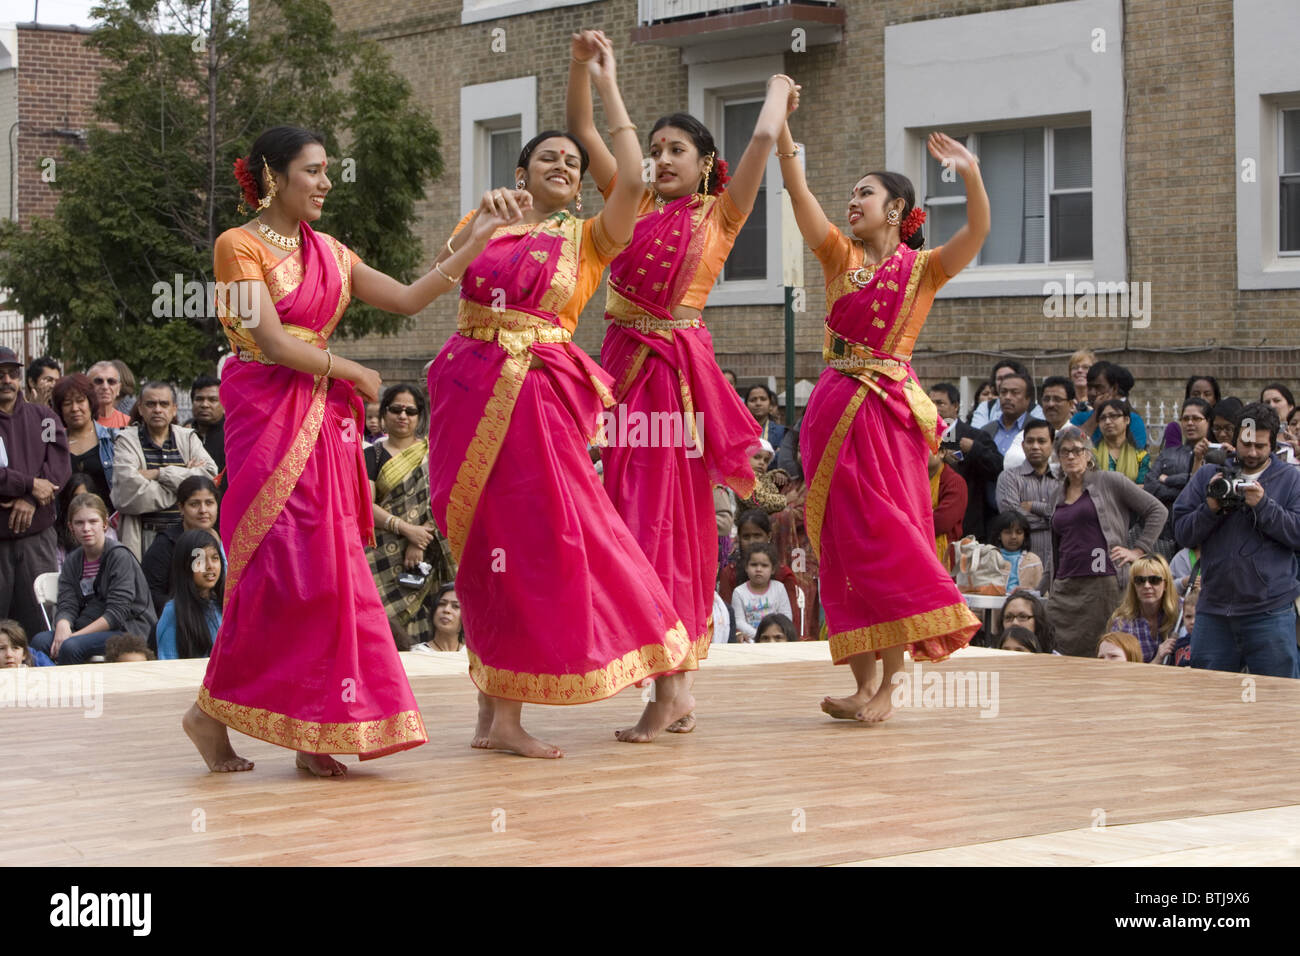 Bangladeshi American performance group perform at a festival for world cultures in Brooklyn; New York. - Stock Image